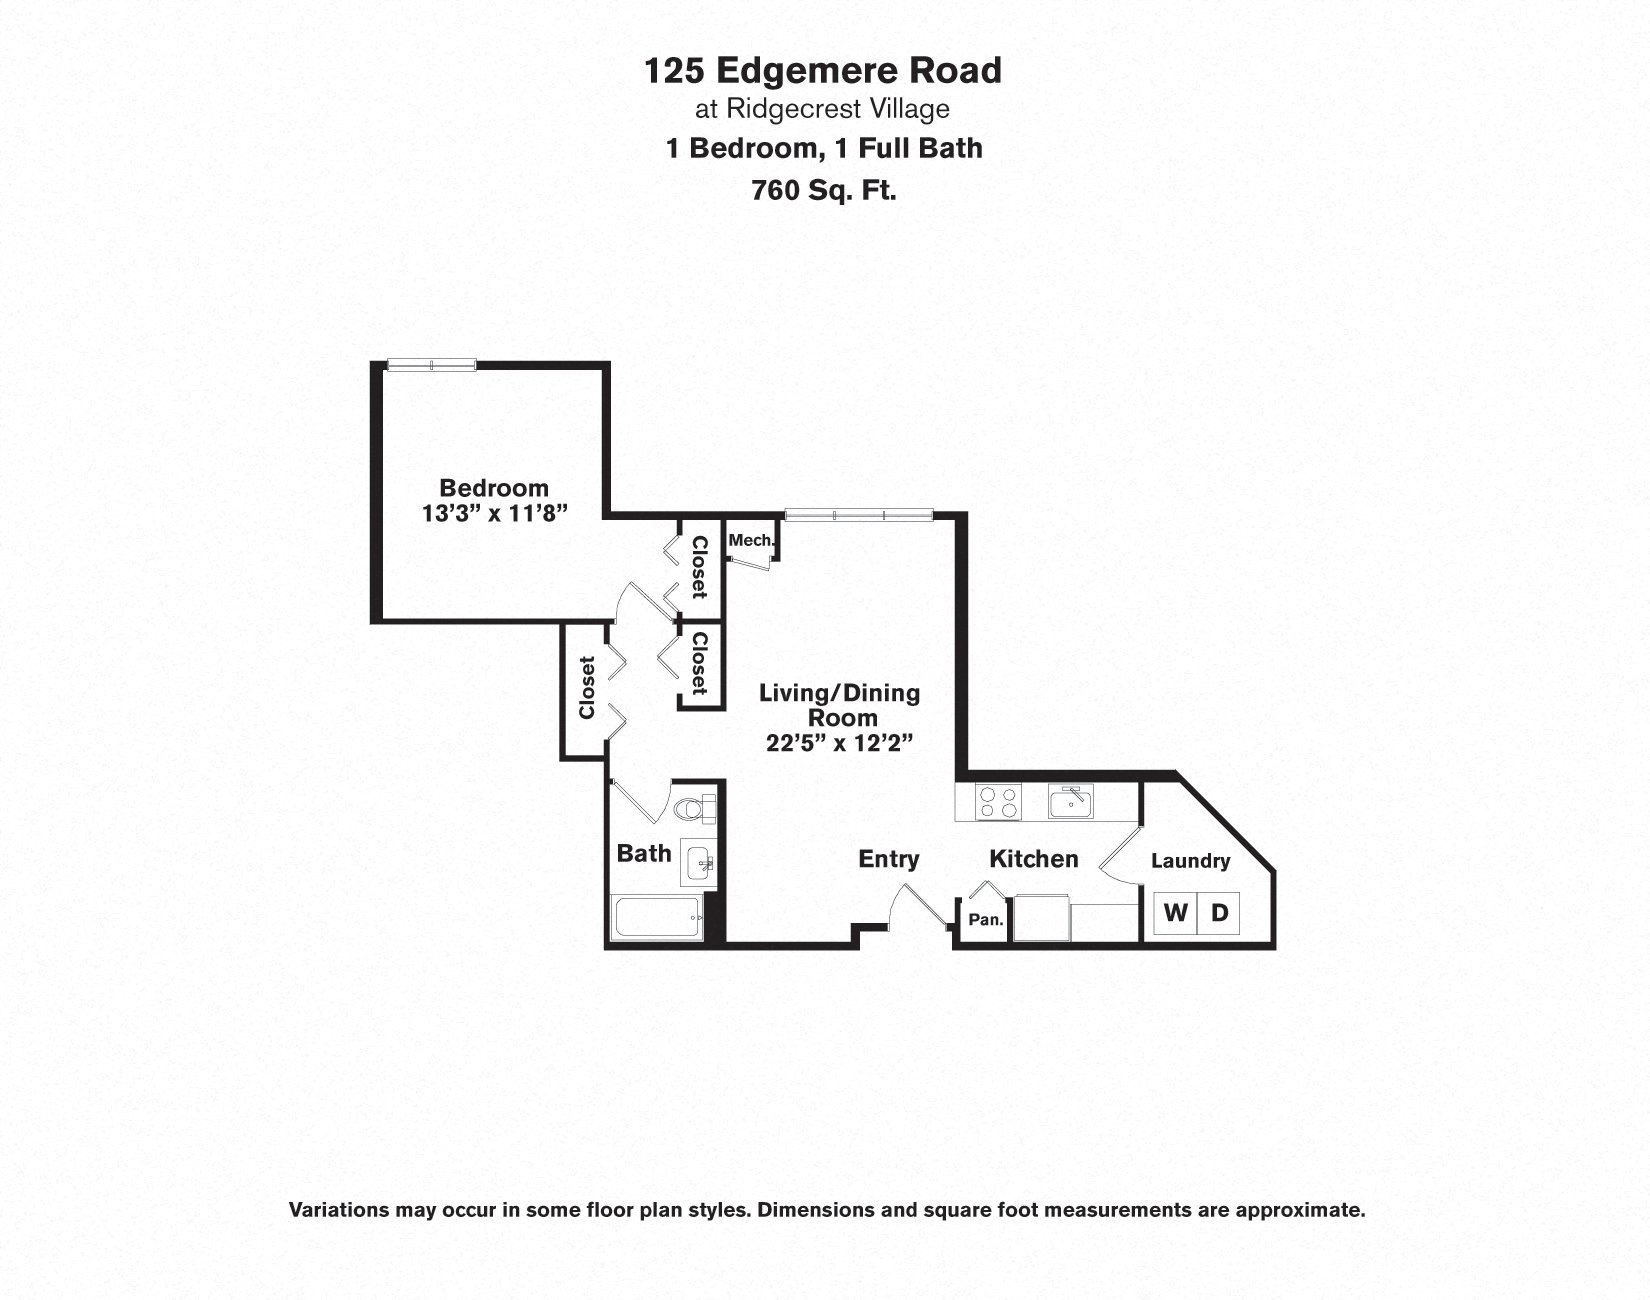 Click to view 1 BR - Edgemere floor plan gallery